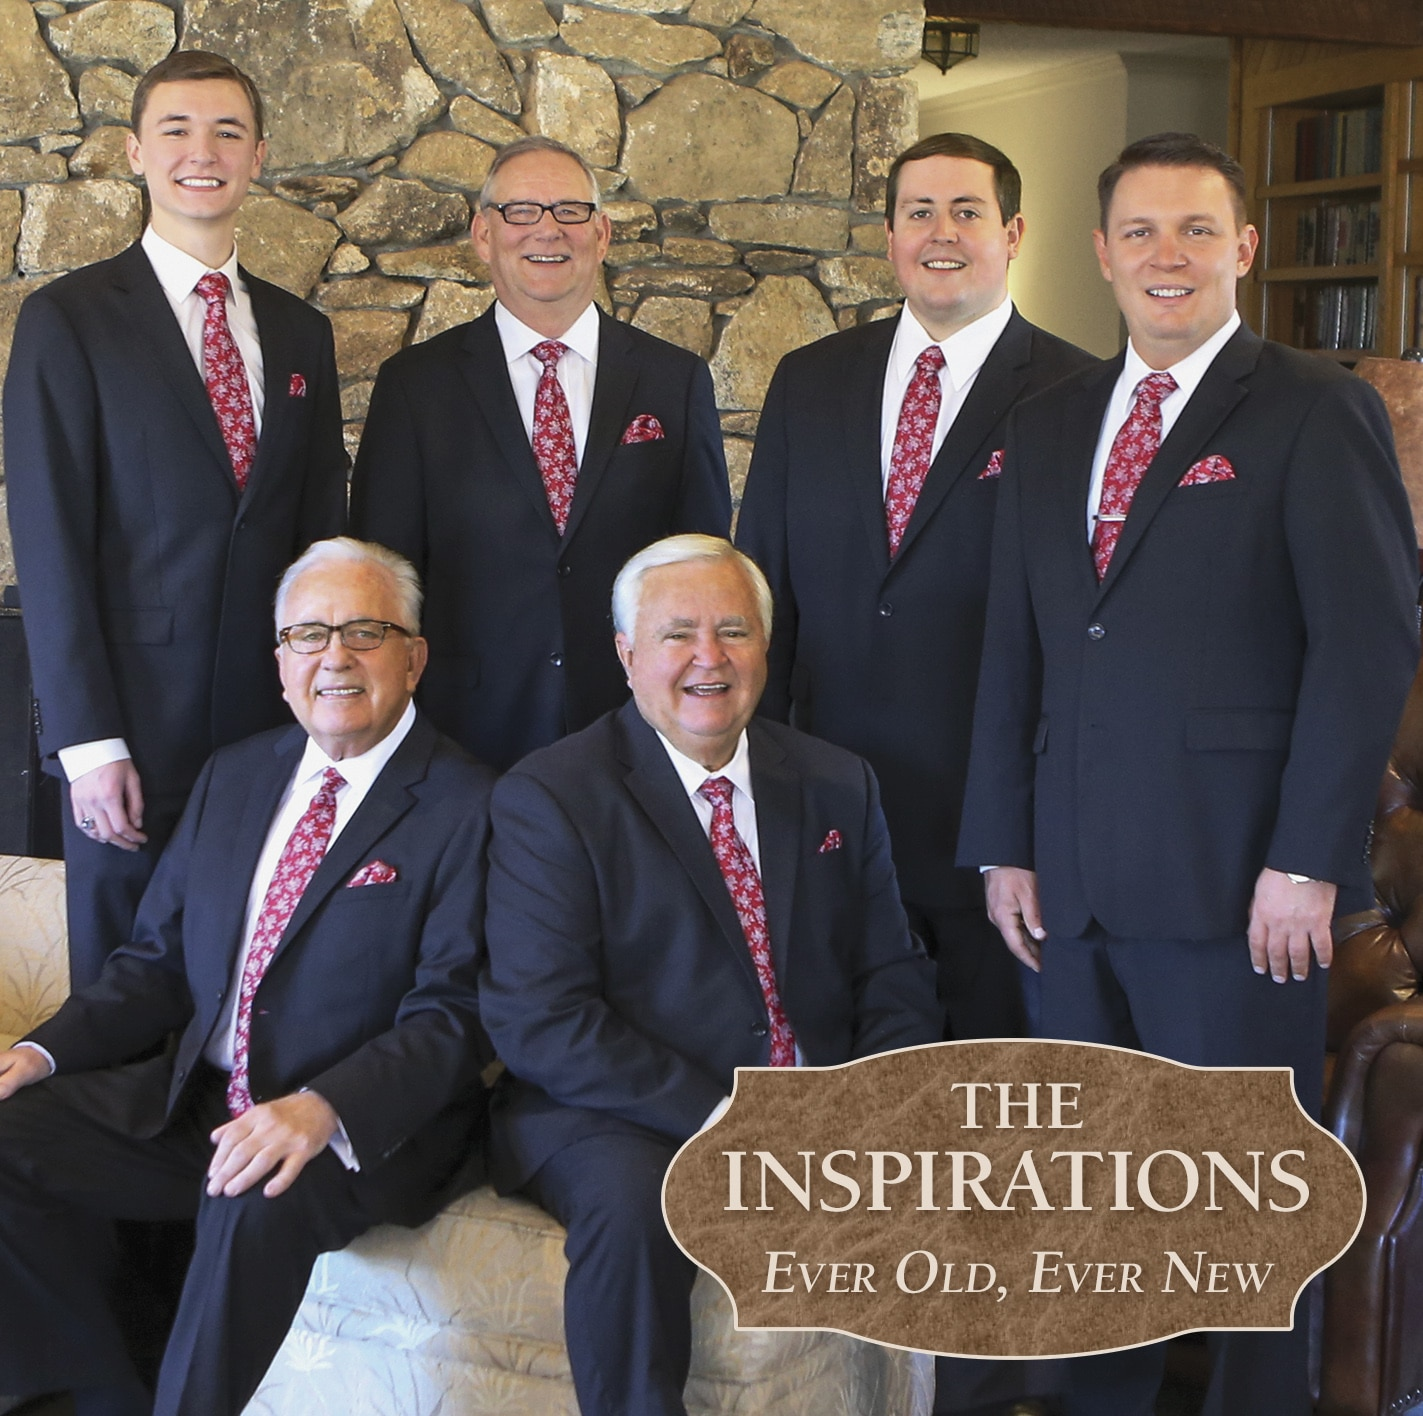 The cover of The Inspirations' album, Ever Old, Ever New